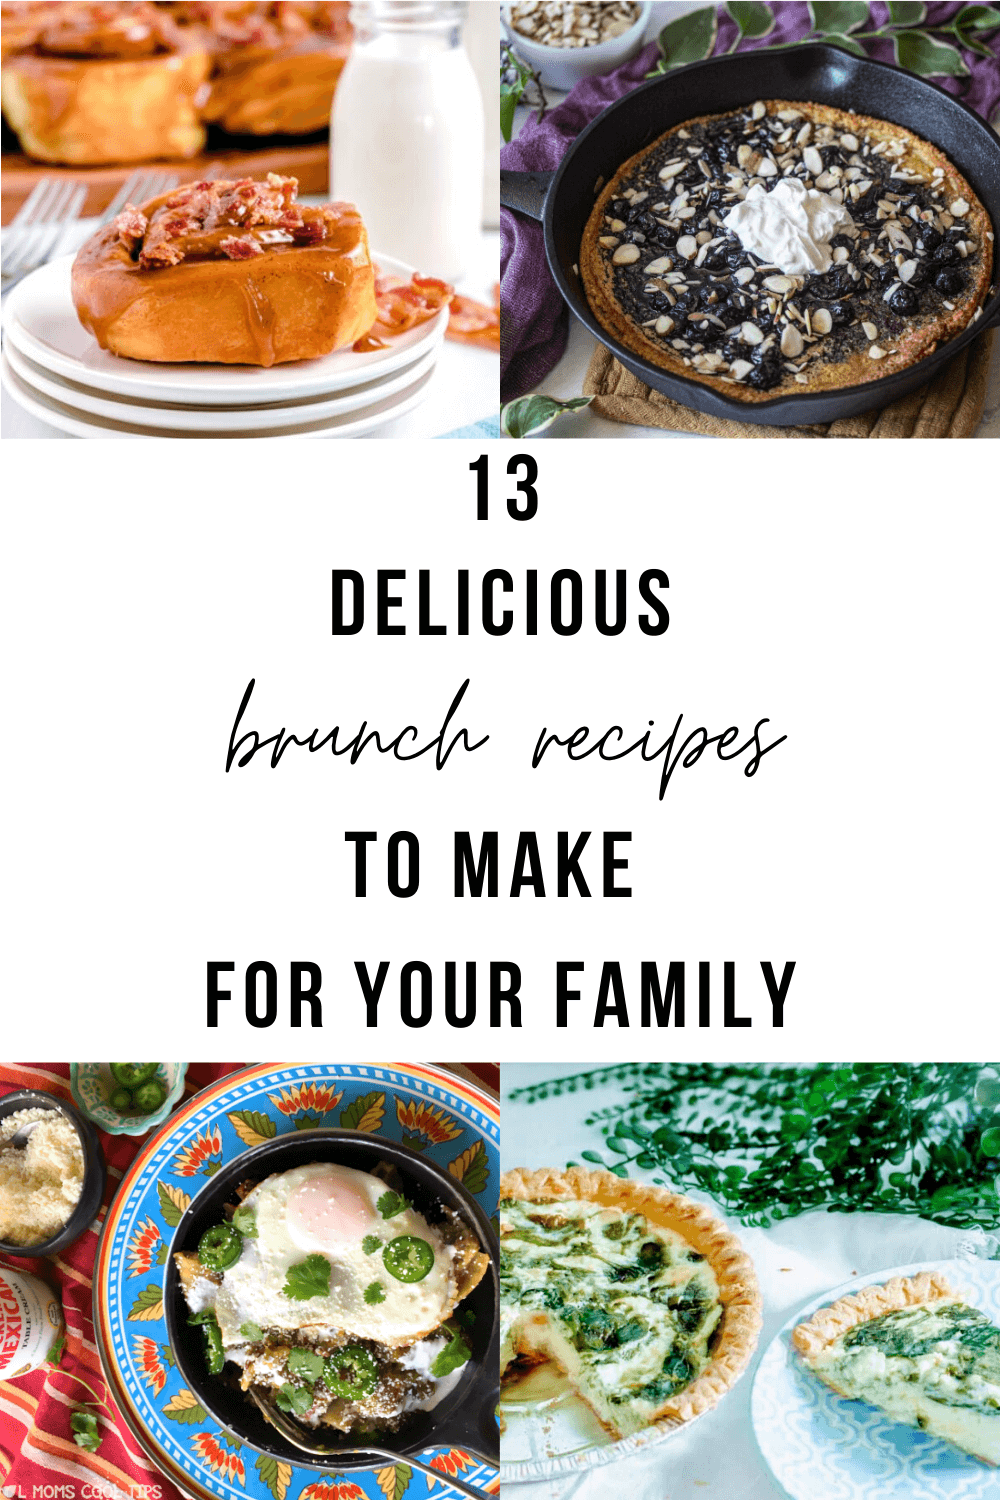 13 Delicious Brunch Recipes | www.thevegasmom.com